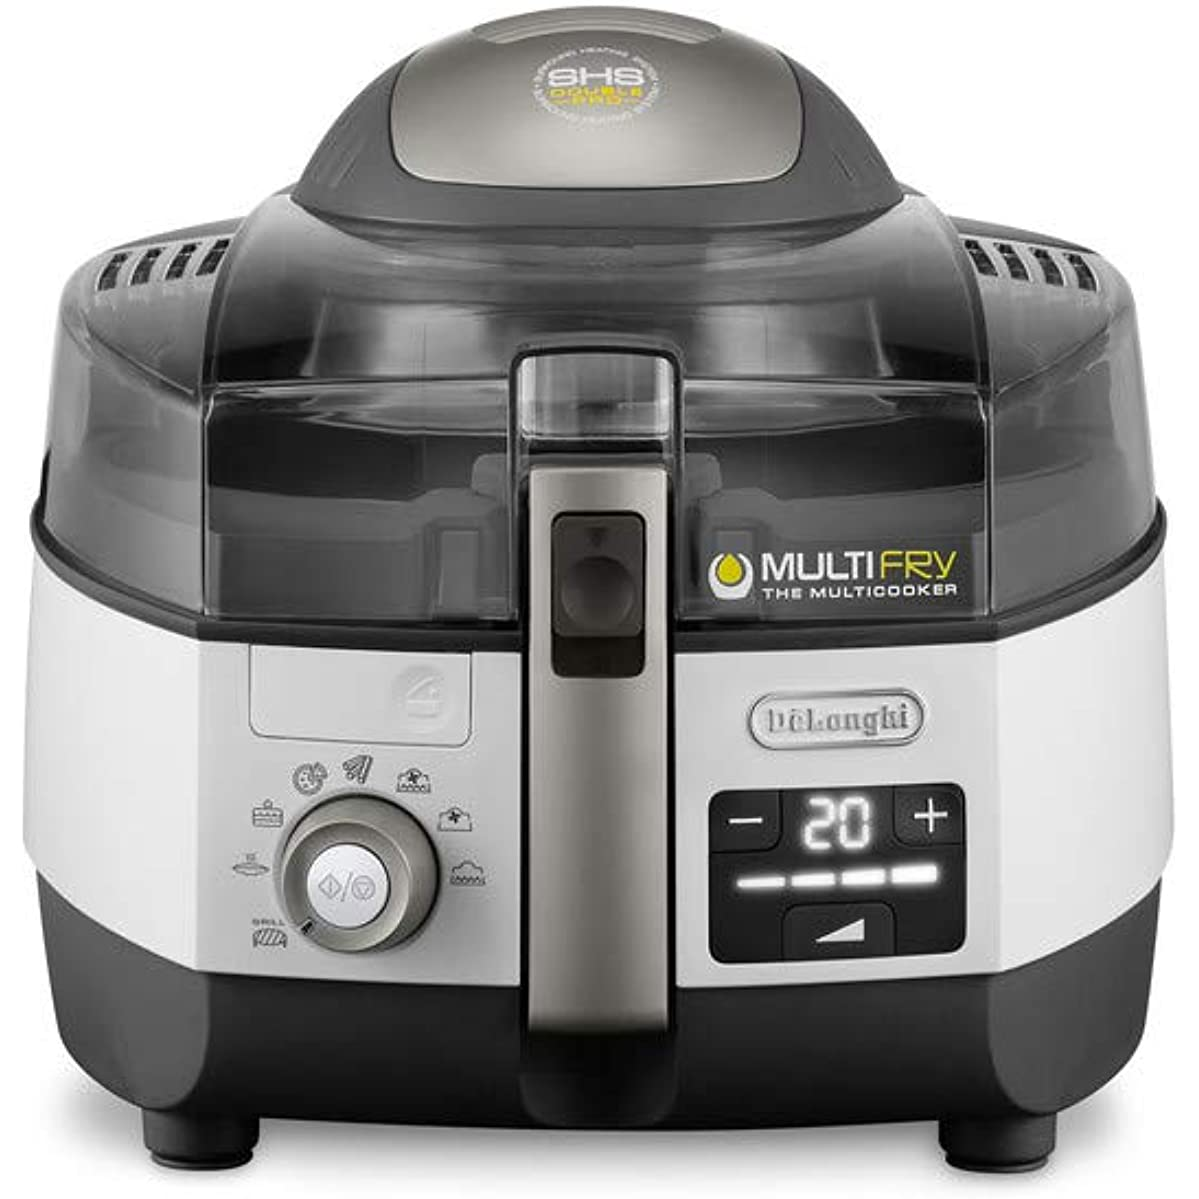 DeLonghi Multifry Extra Chef Plus FH 1396/1